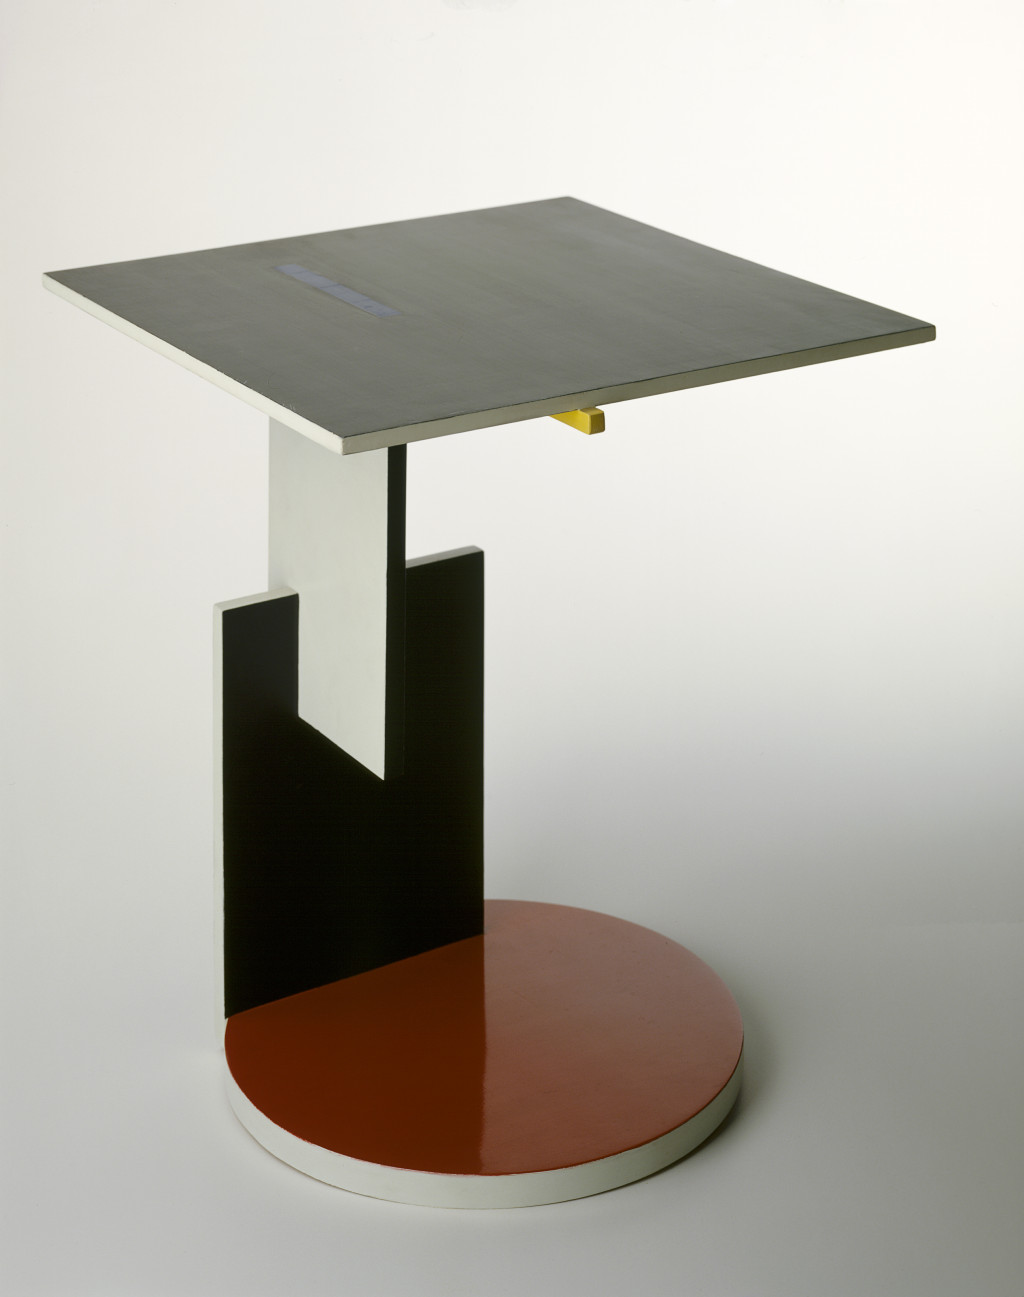 Fig. 7 Gerrit Rietveld, End Table, 1923, painted beech wood and birch plywood (multiply), 61.5 x 49.5 x 50.5 cm. purchased from the designer in 1951 for the 'De Stijl' exhibition